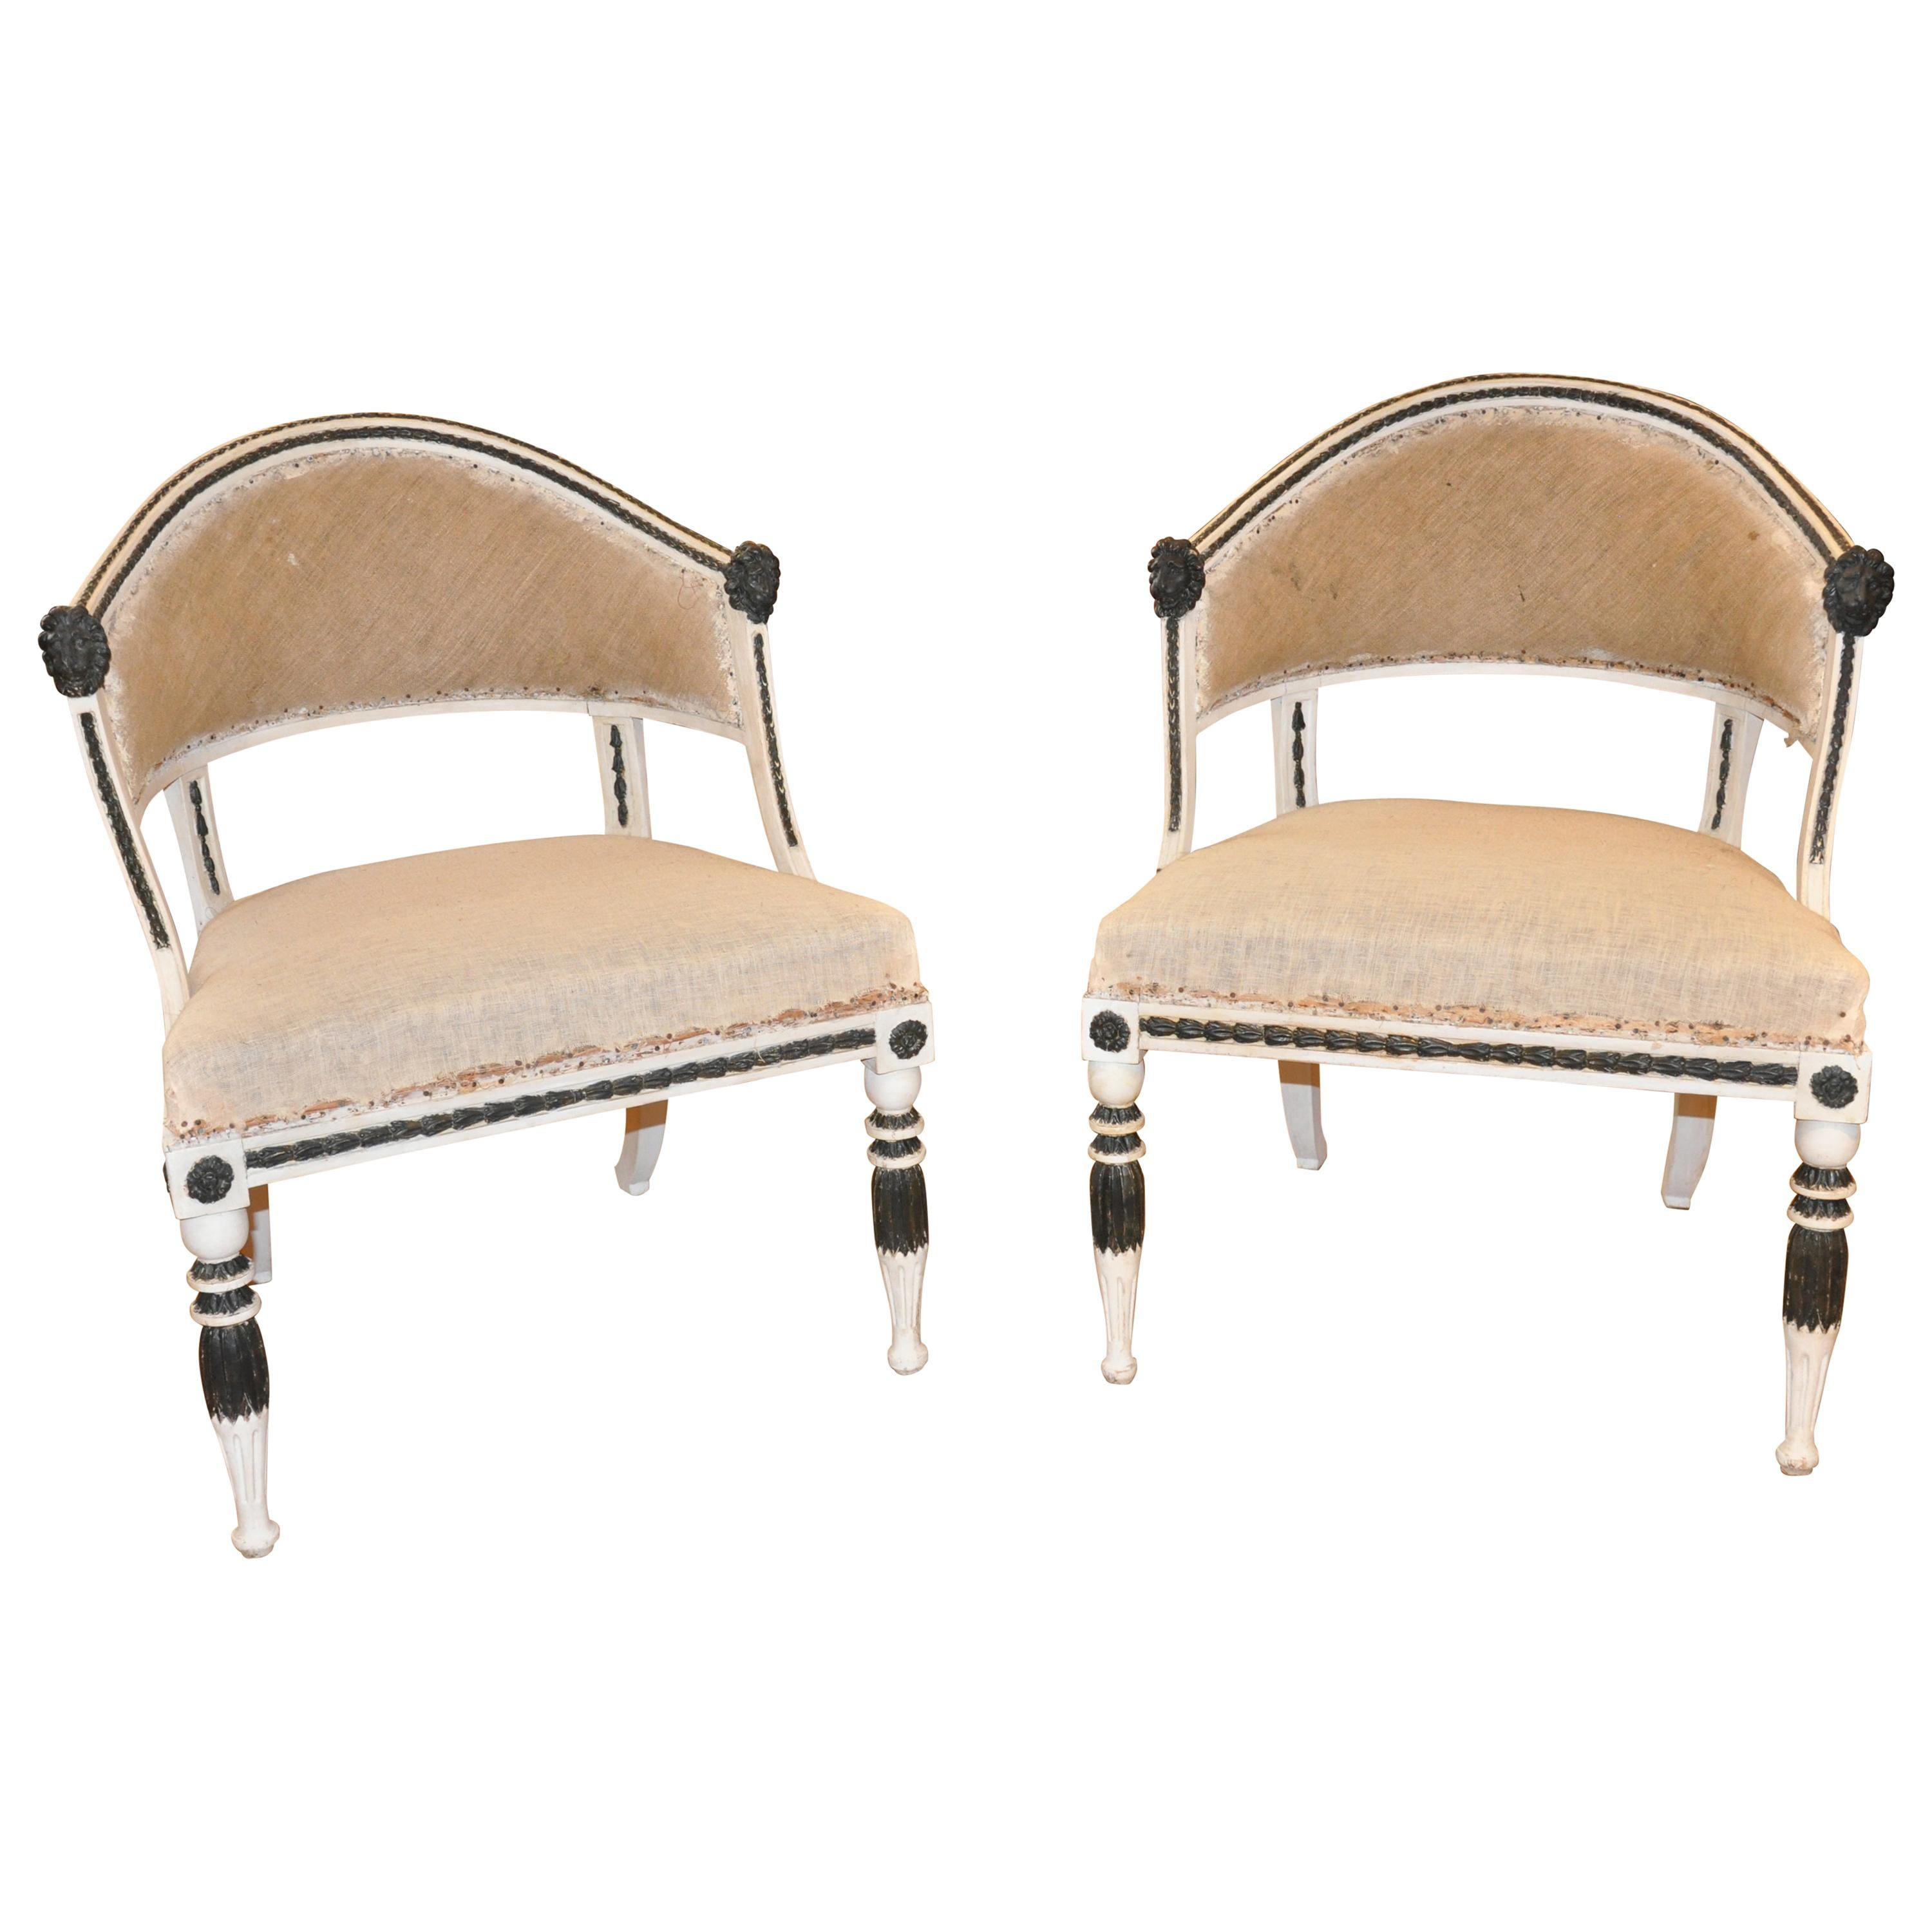 Pair of Swedish Gustavian Neoclassical Tub Chairs by Ephraim Stahl